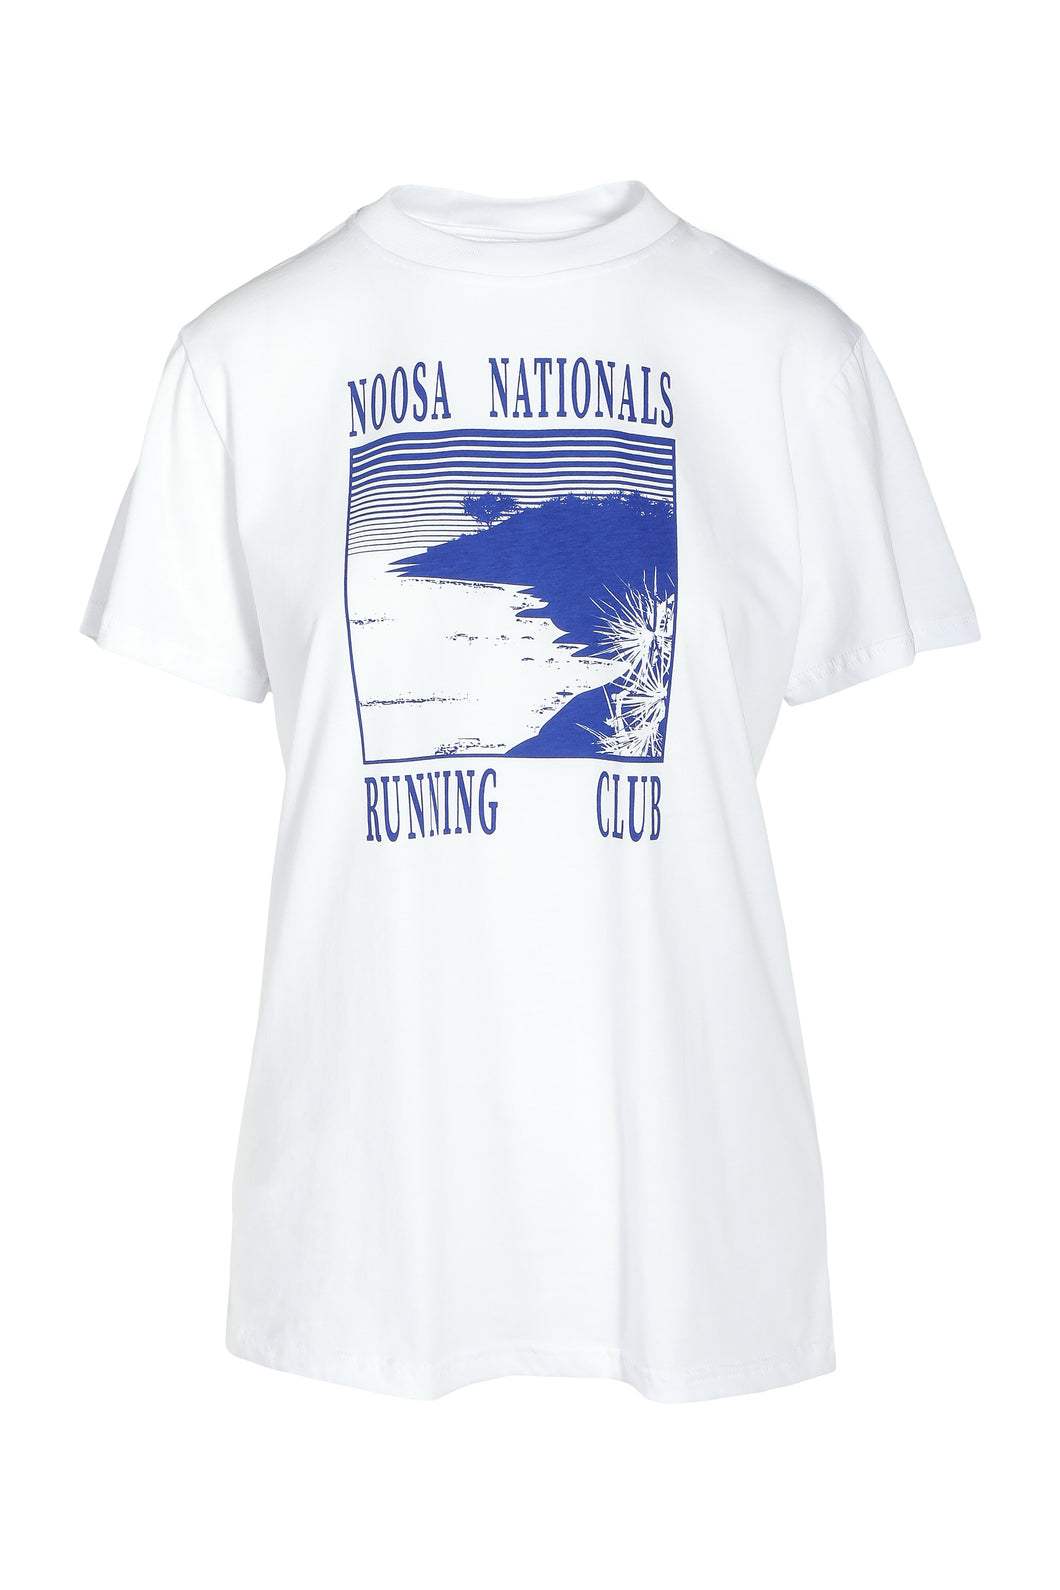 Running Club T-shirt